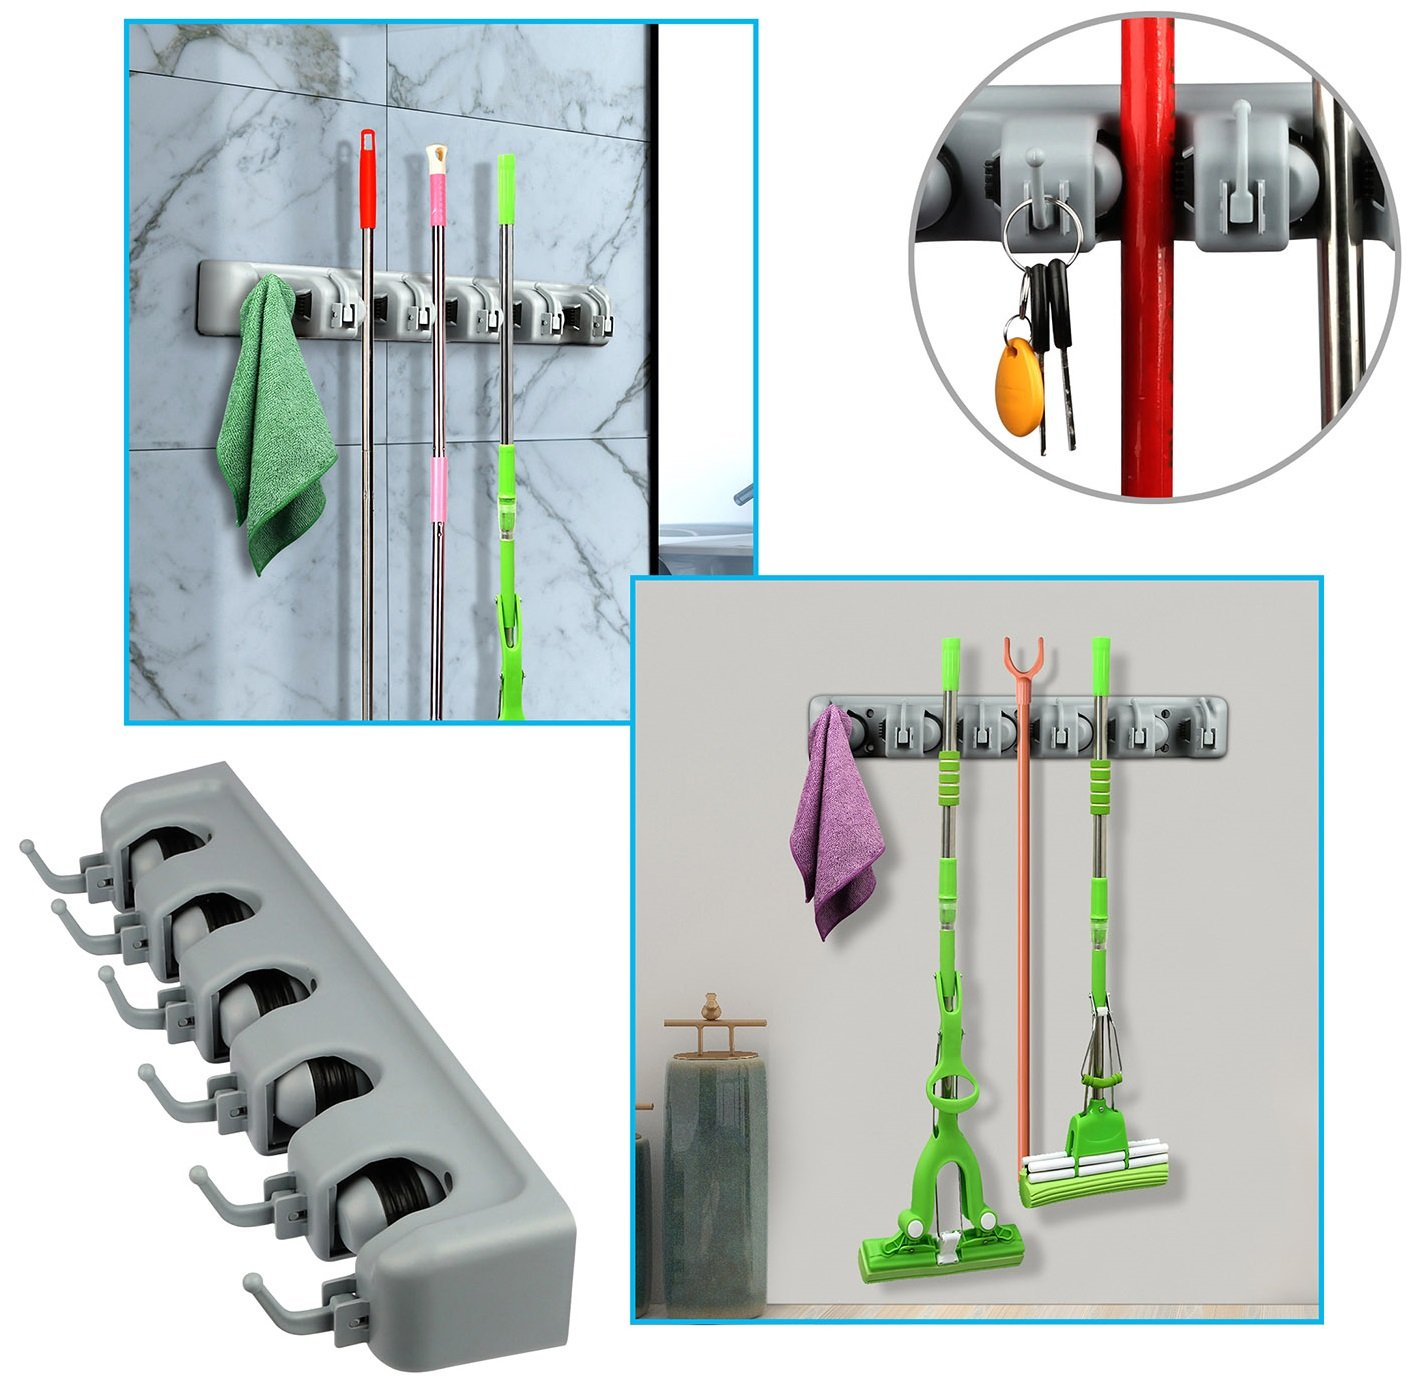 GPCT Wall Mounted Mop Broom Holder Organizer. Non-Slip, 5 Positions & 6 Hooks, Storage Organization Hangers Wall Closet Rakes Garage Garden Tool Shed Yard Bathroom Kitchen Pantry Office Organizer